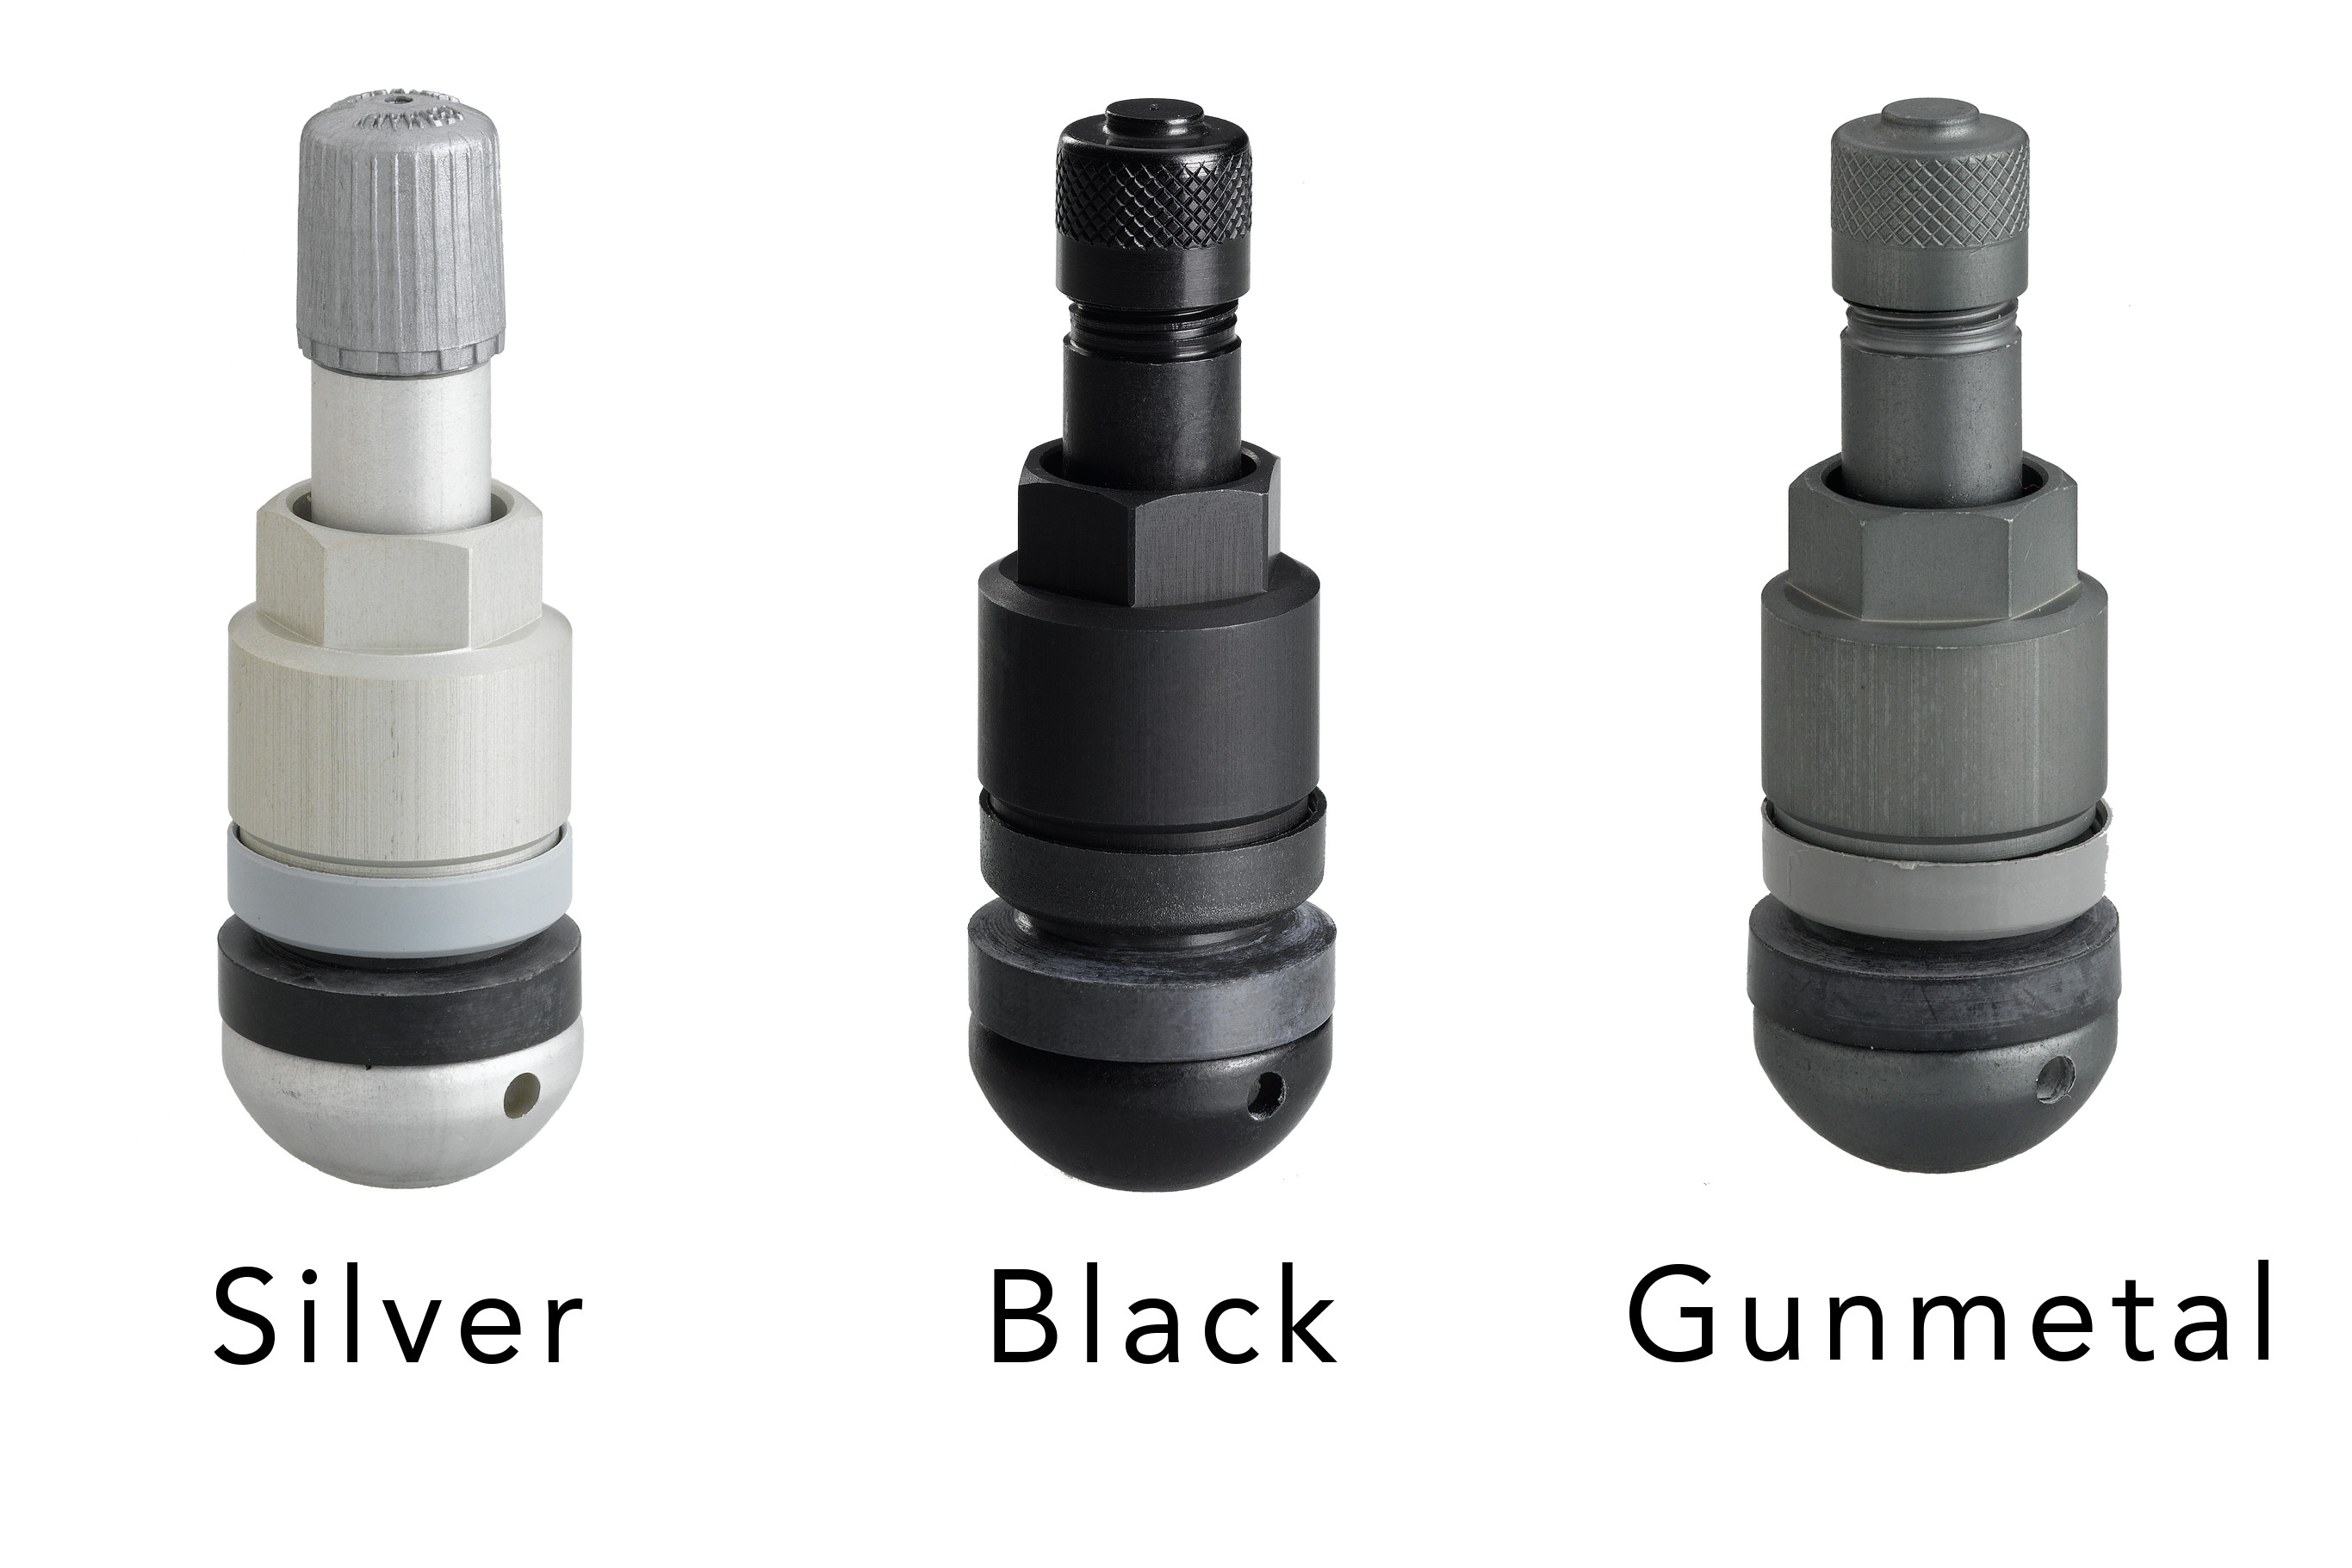 alligator tpms stem color options